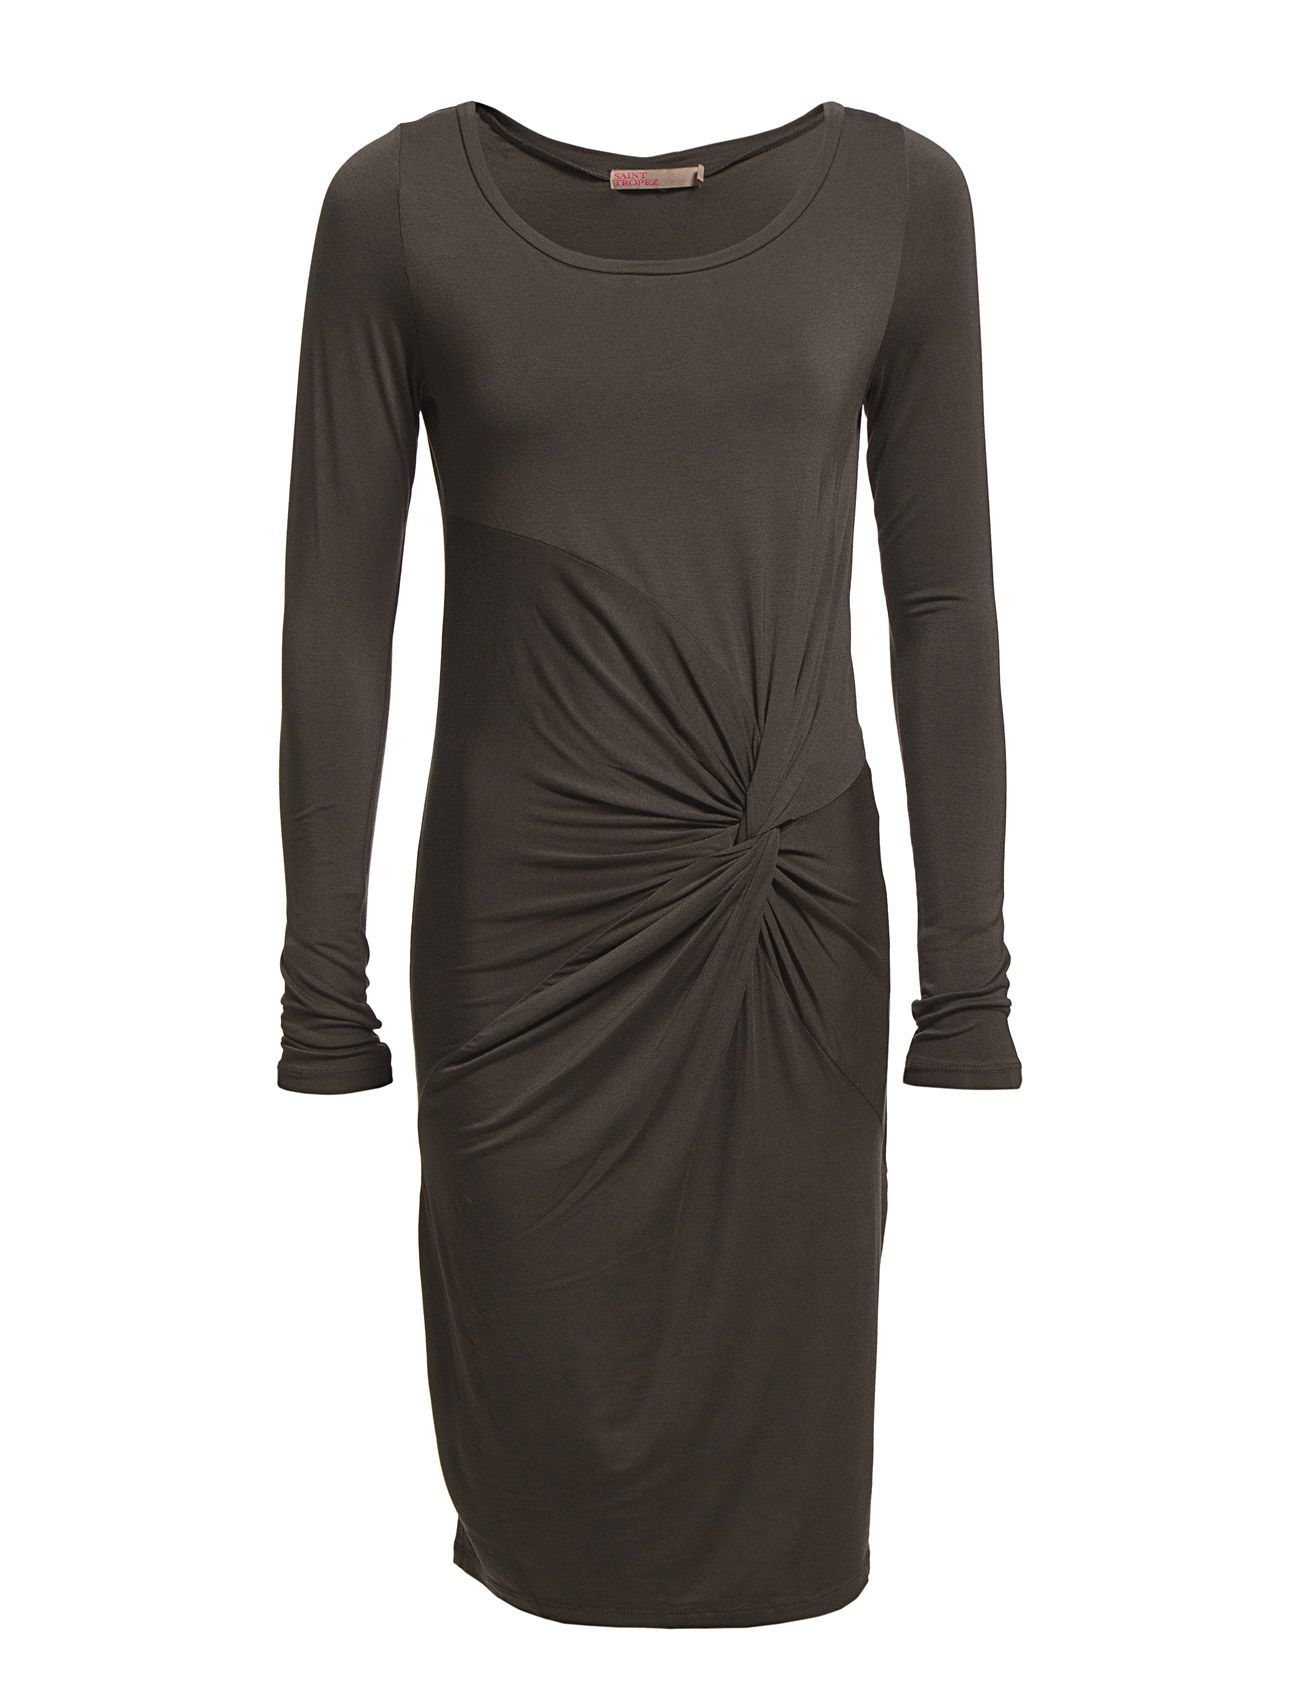 L/S Dress With Draping Detail